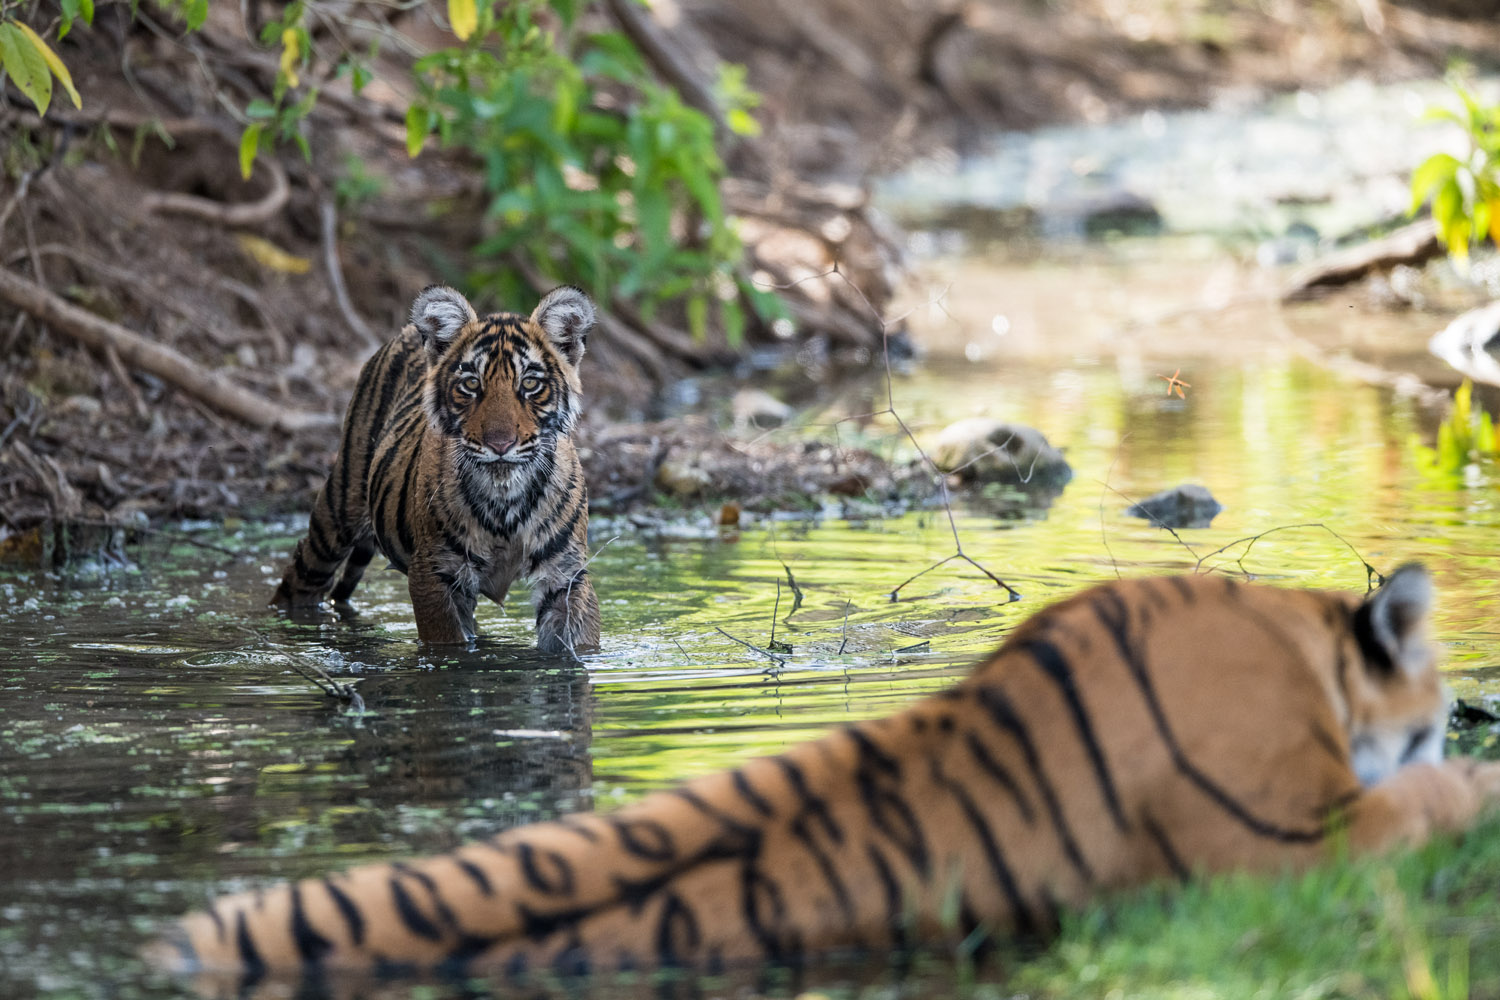 Bengal tiger cub in stream with mother, Ranthambhore National Park, Rajasthan, India